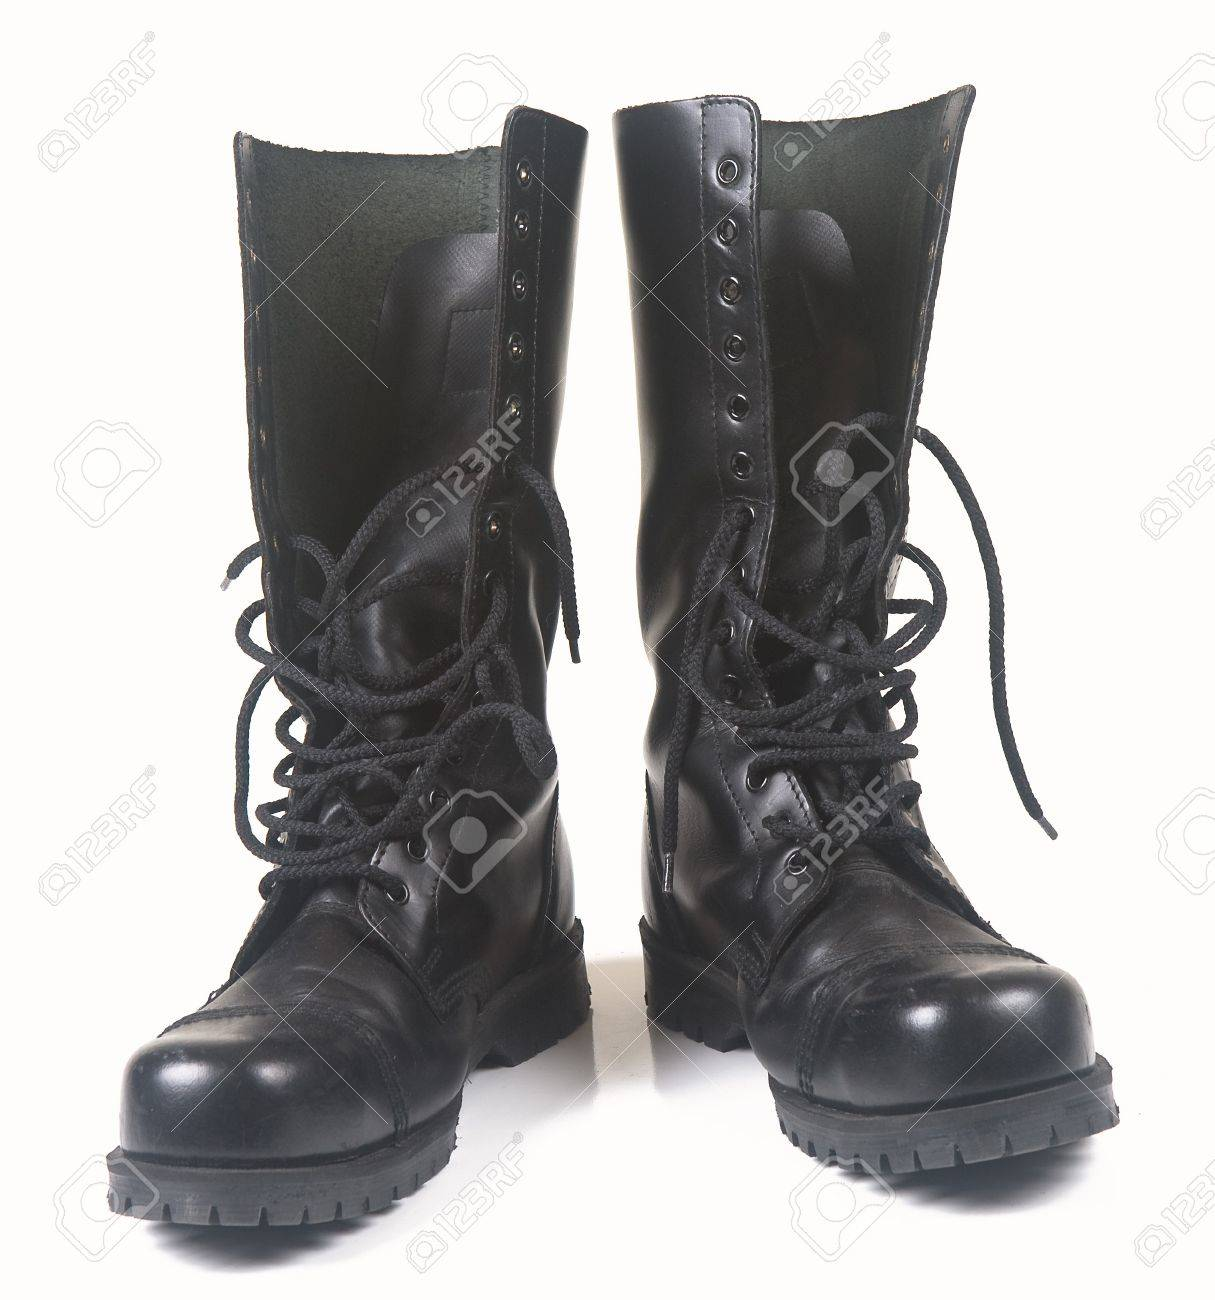 Steel Toe Black Leather Boots On White Background Stock Photo ...